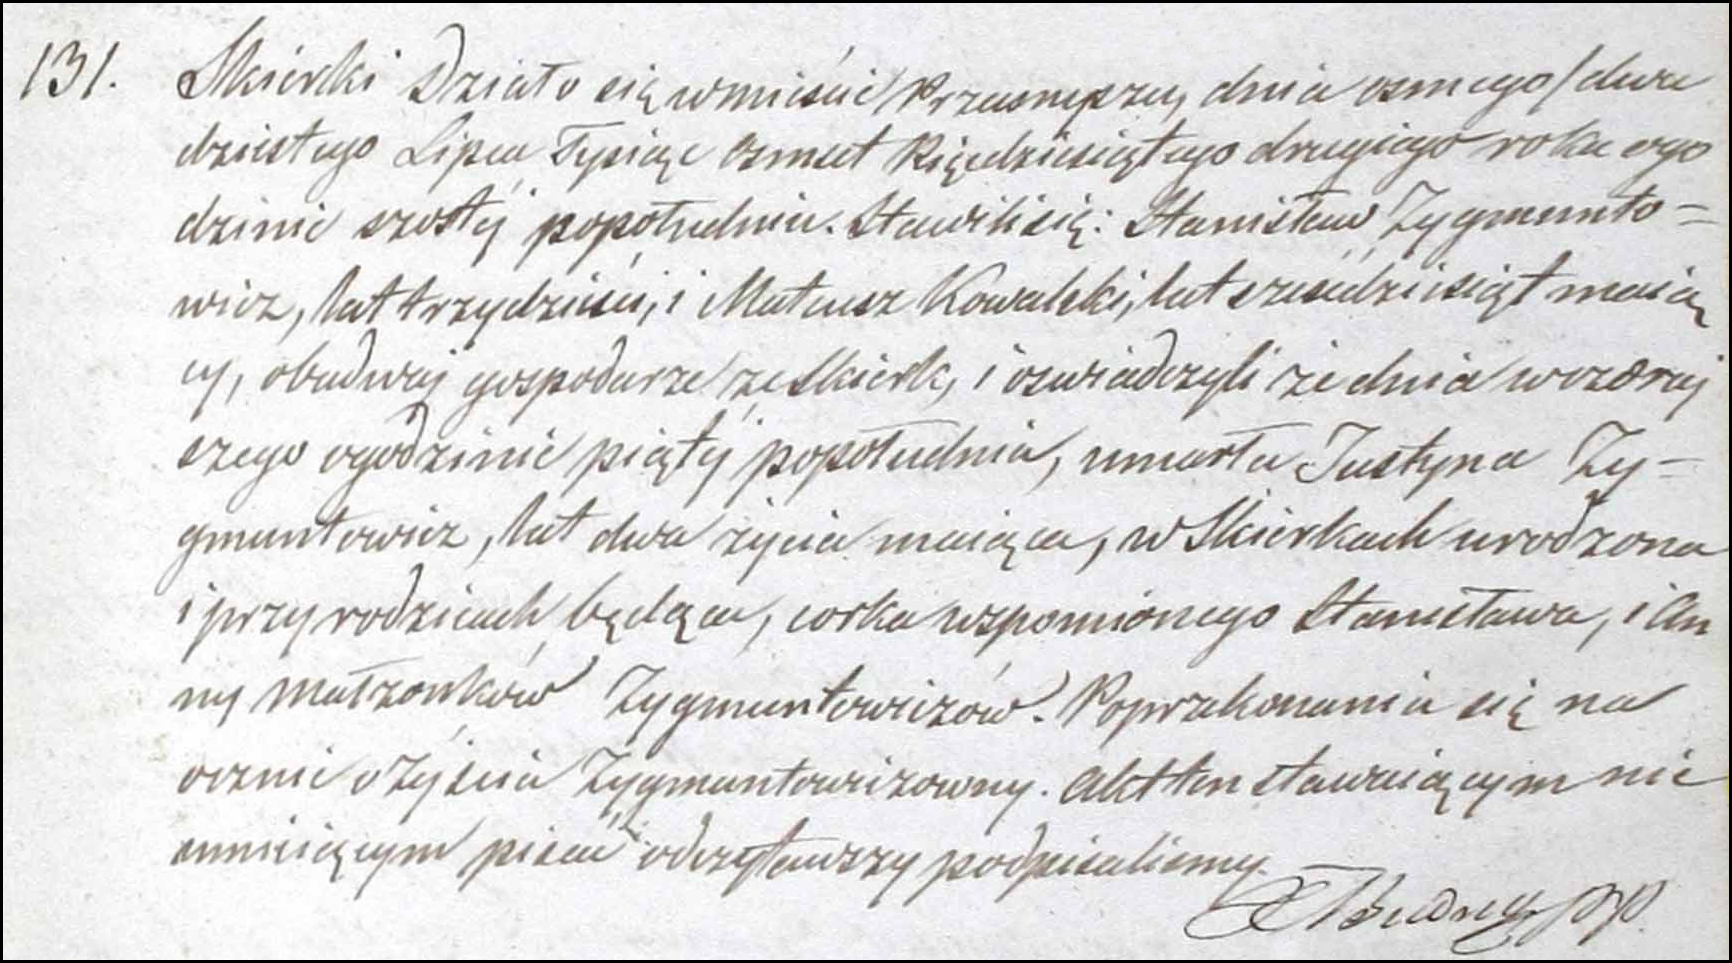 Death and Burial Record for Justyna Zygmuntowicz - 1852